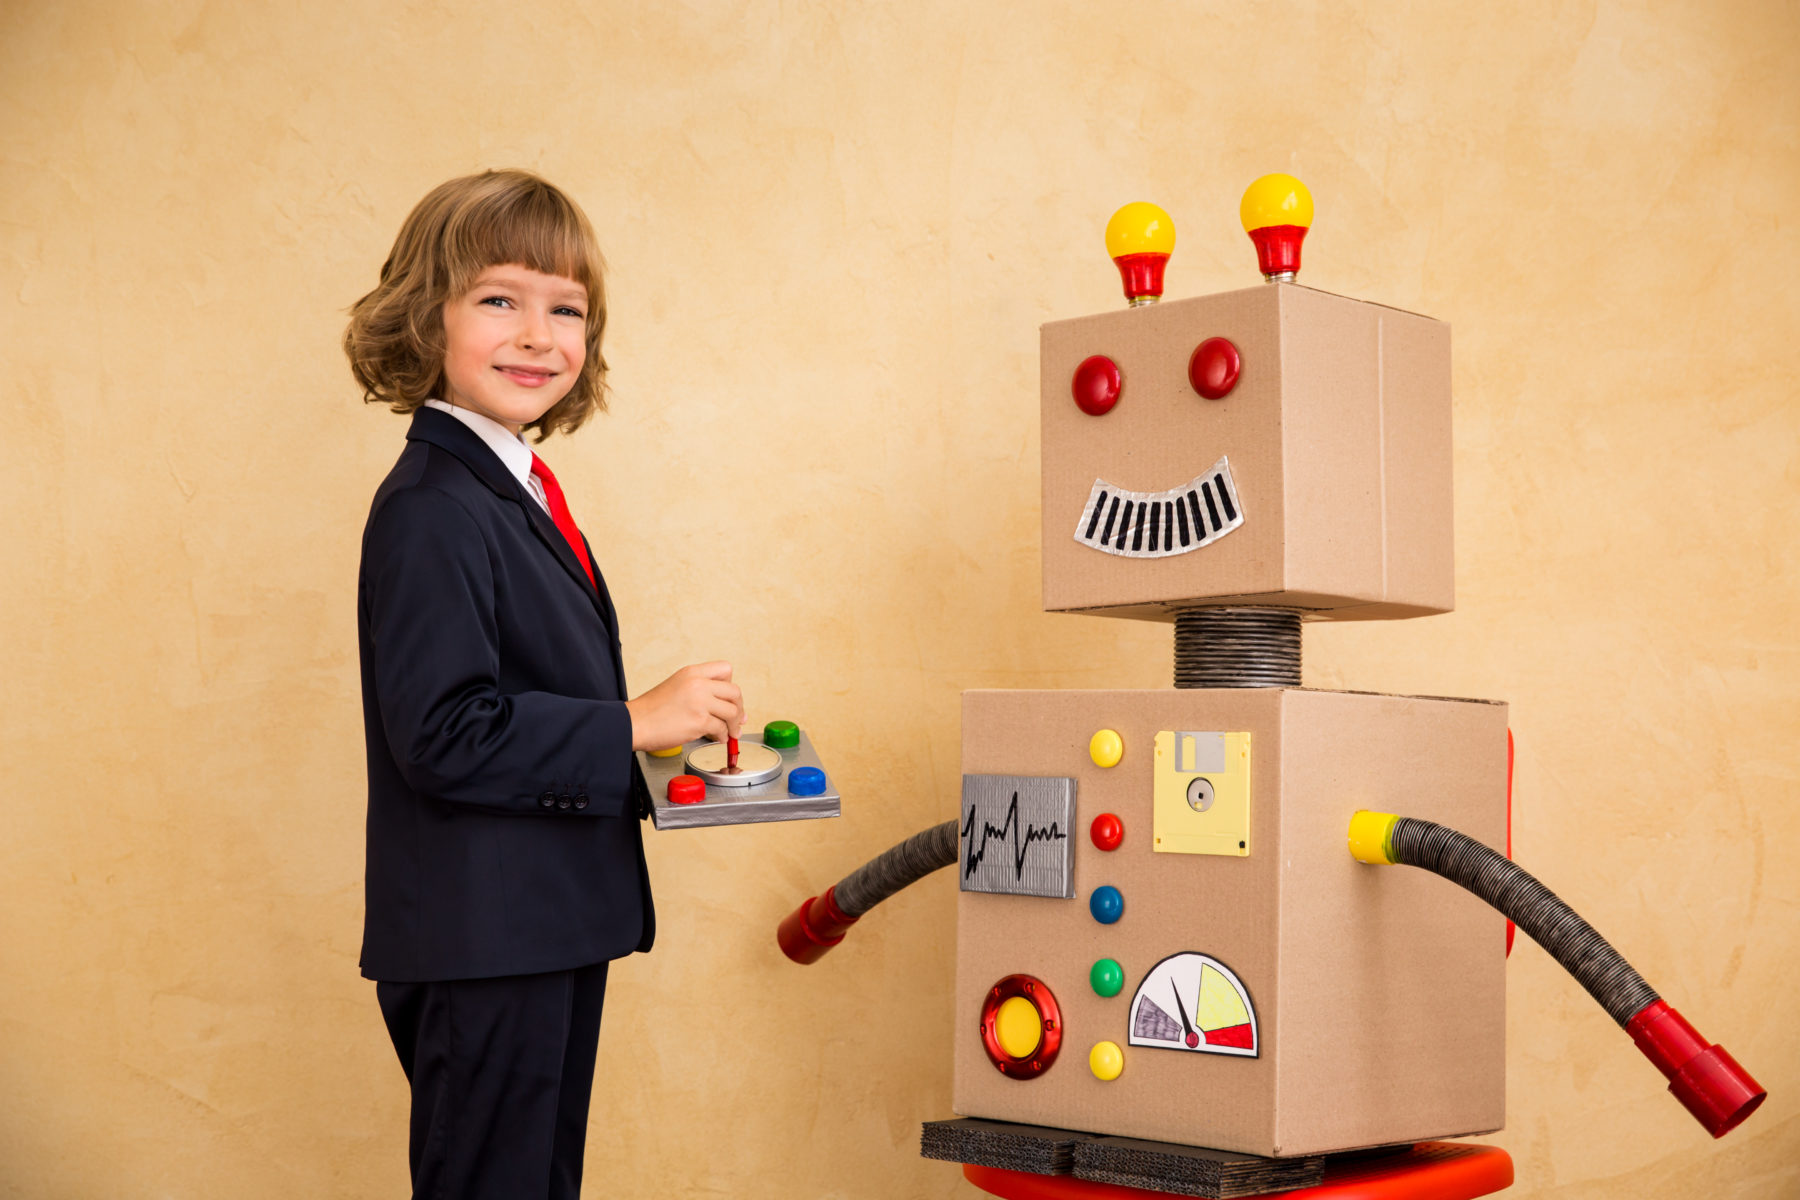 young-businessman-with-robot-PT8EBN8-e1541064148836-2.jpg